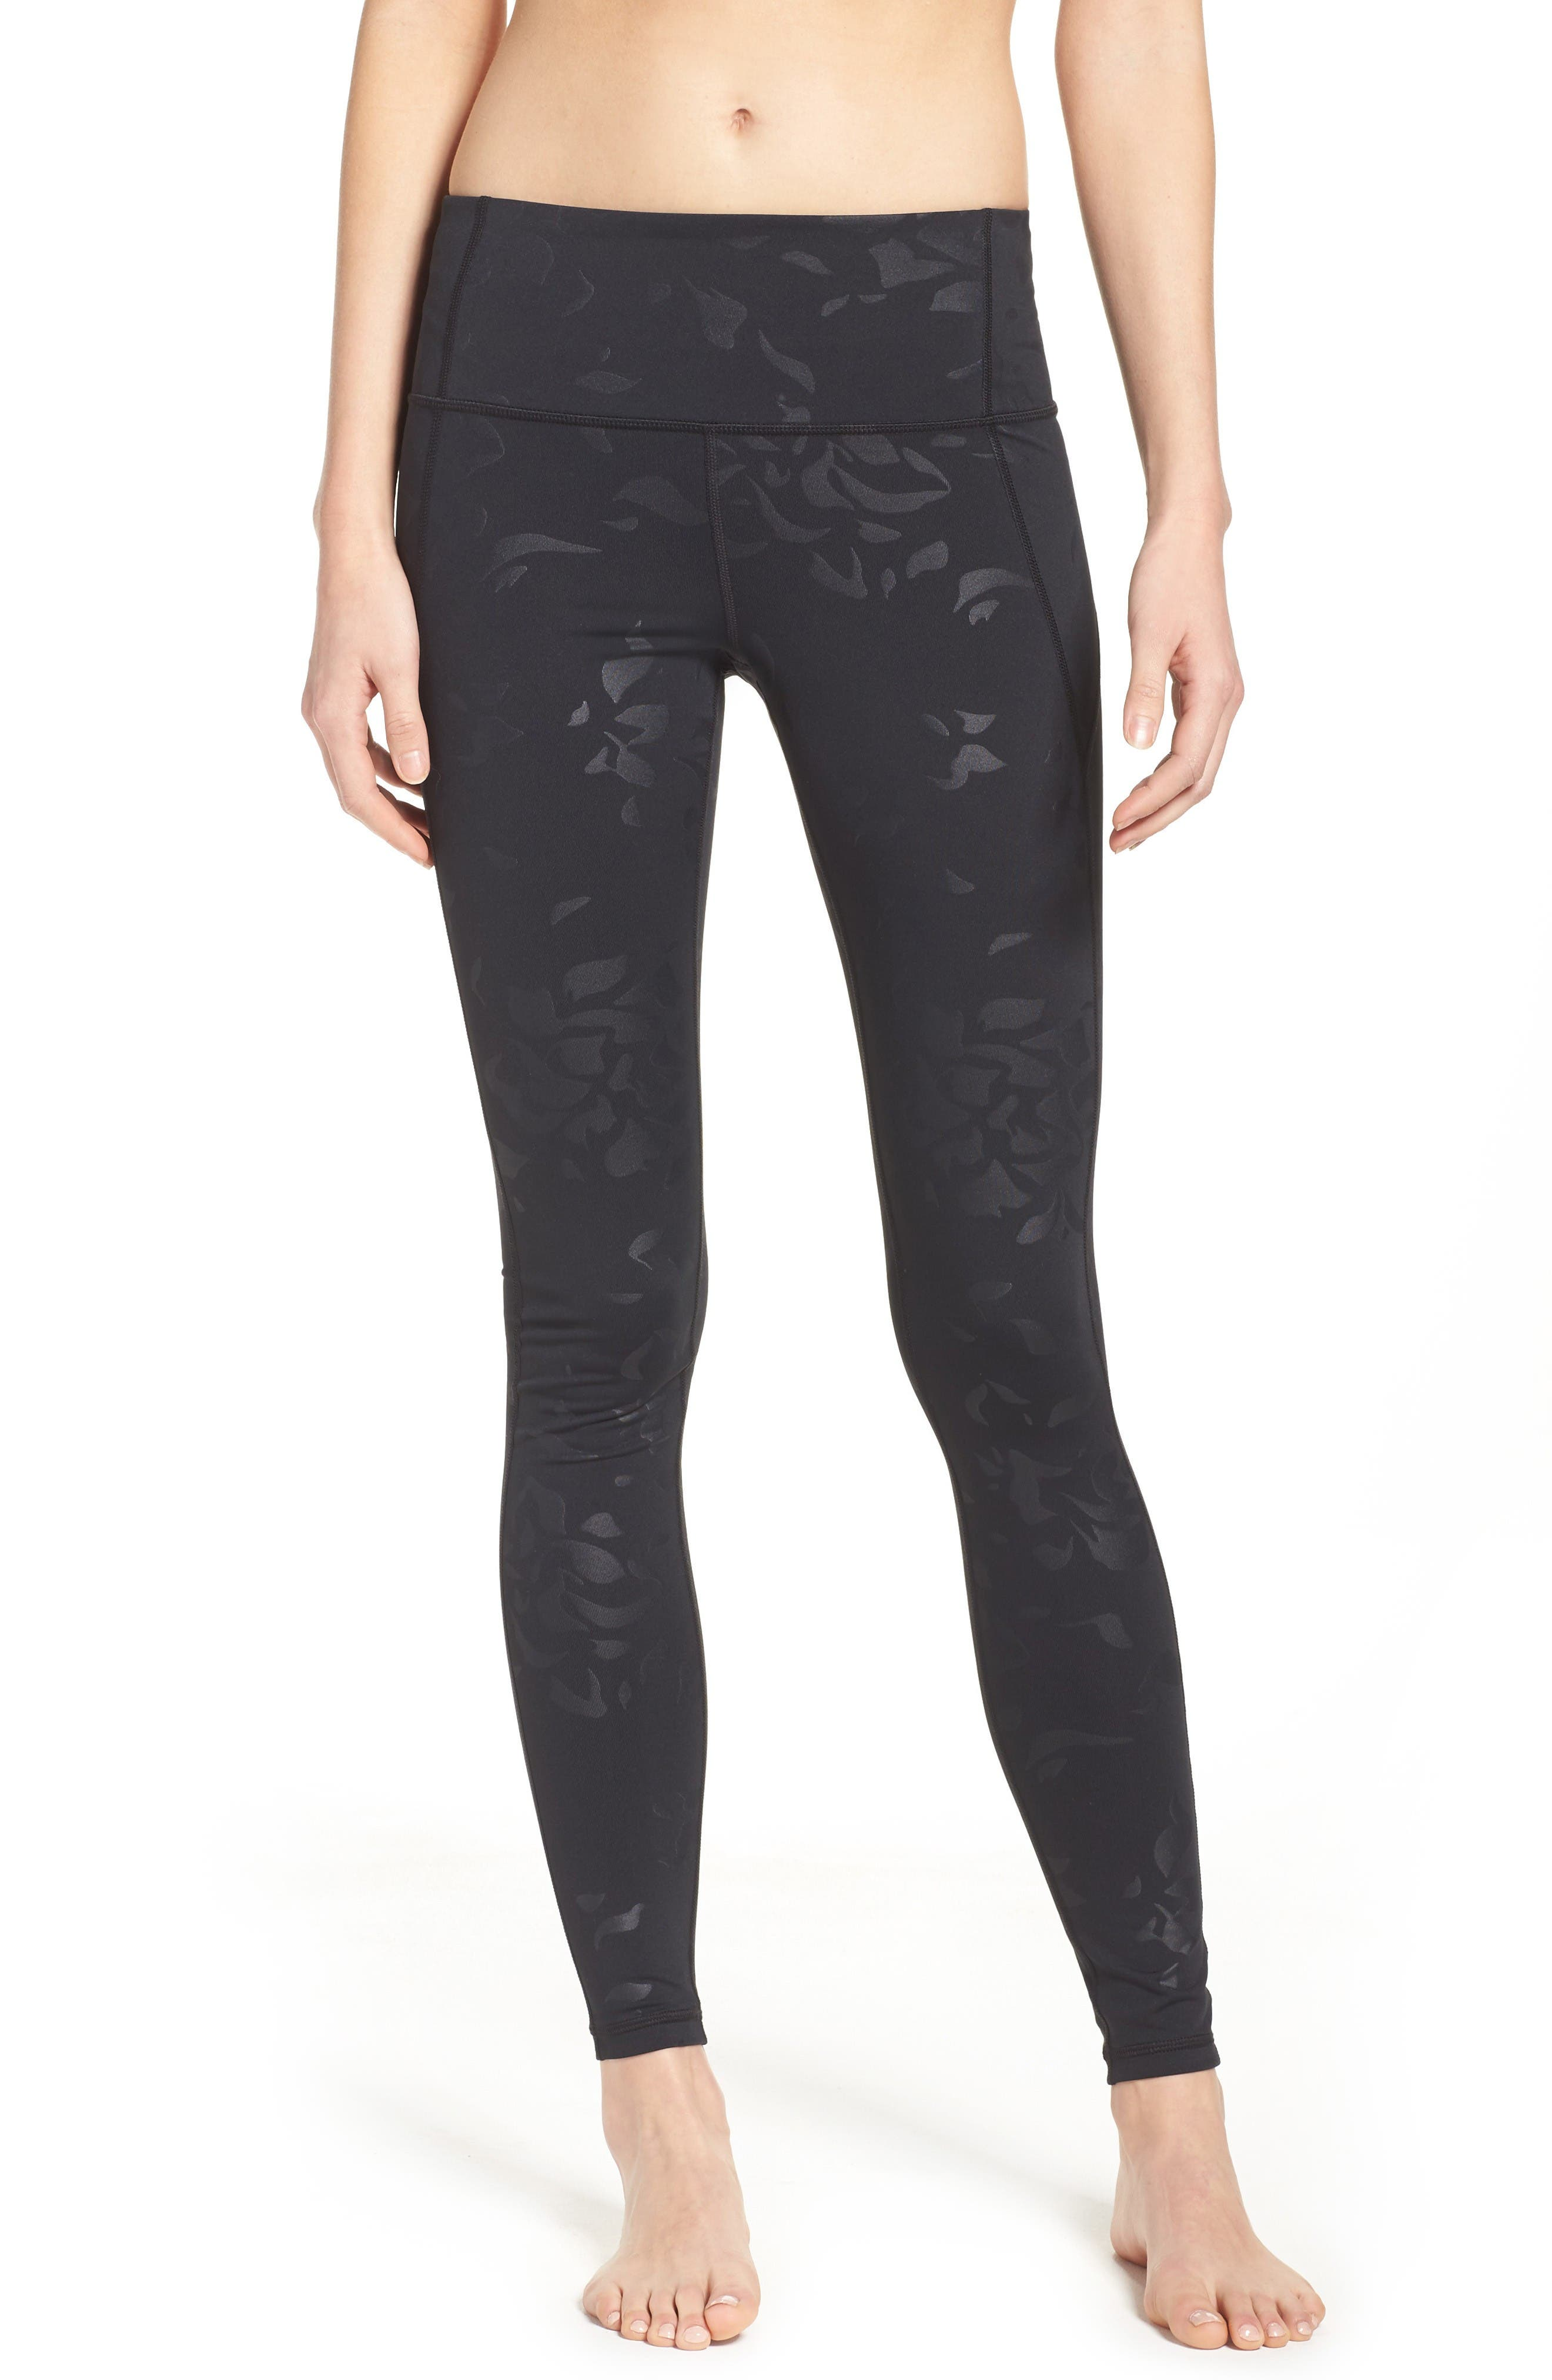 Under Armour Mirror High Rise Leggings